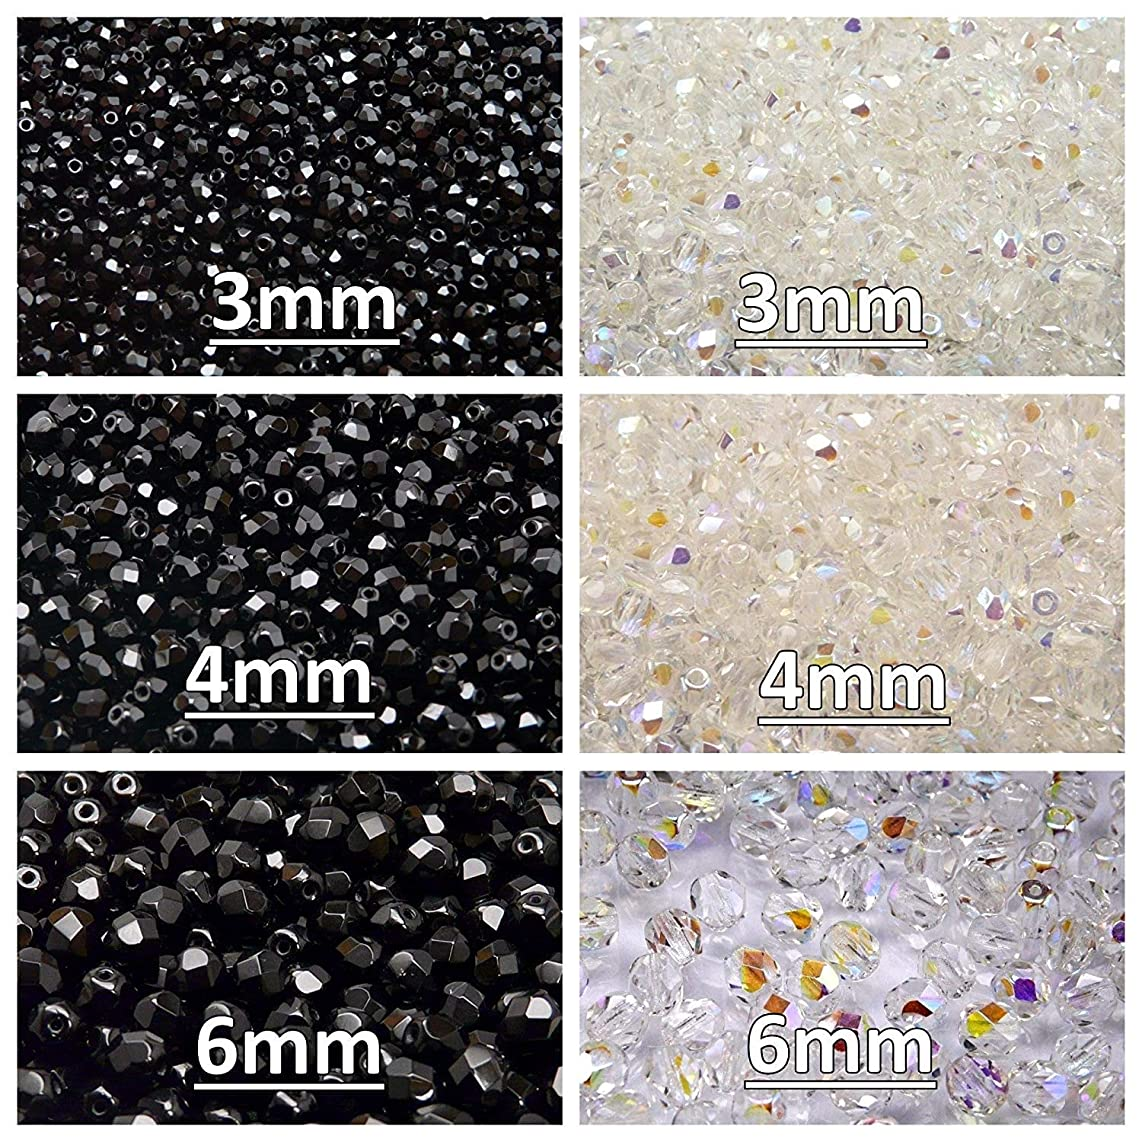 Czech Fire-Polished Glass Beads Round 3mm, 4mm, 6mm, Two Colors. Total 500 pcs. Set 2CFP 004 (3FP001 3FP002 4FP001 4FP002 6FP001 6FP002)